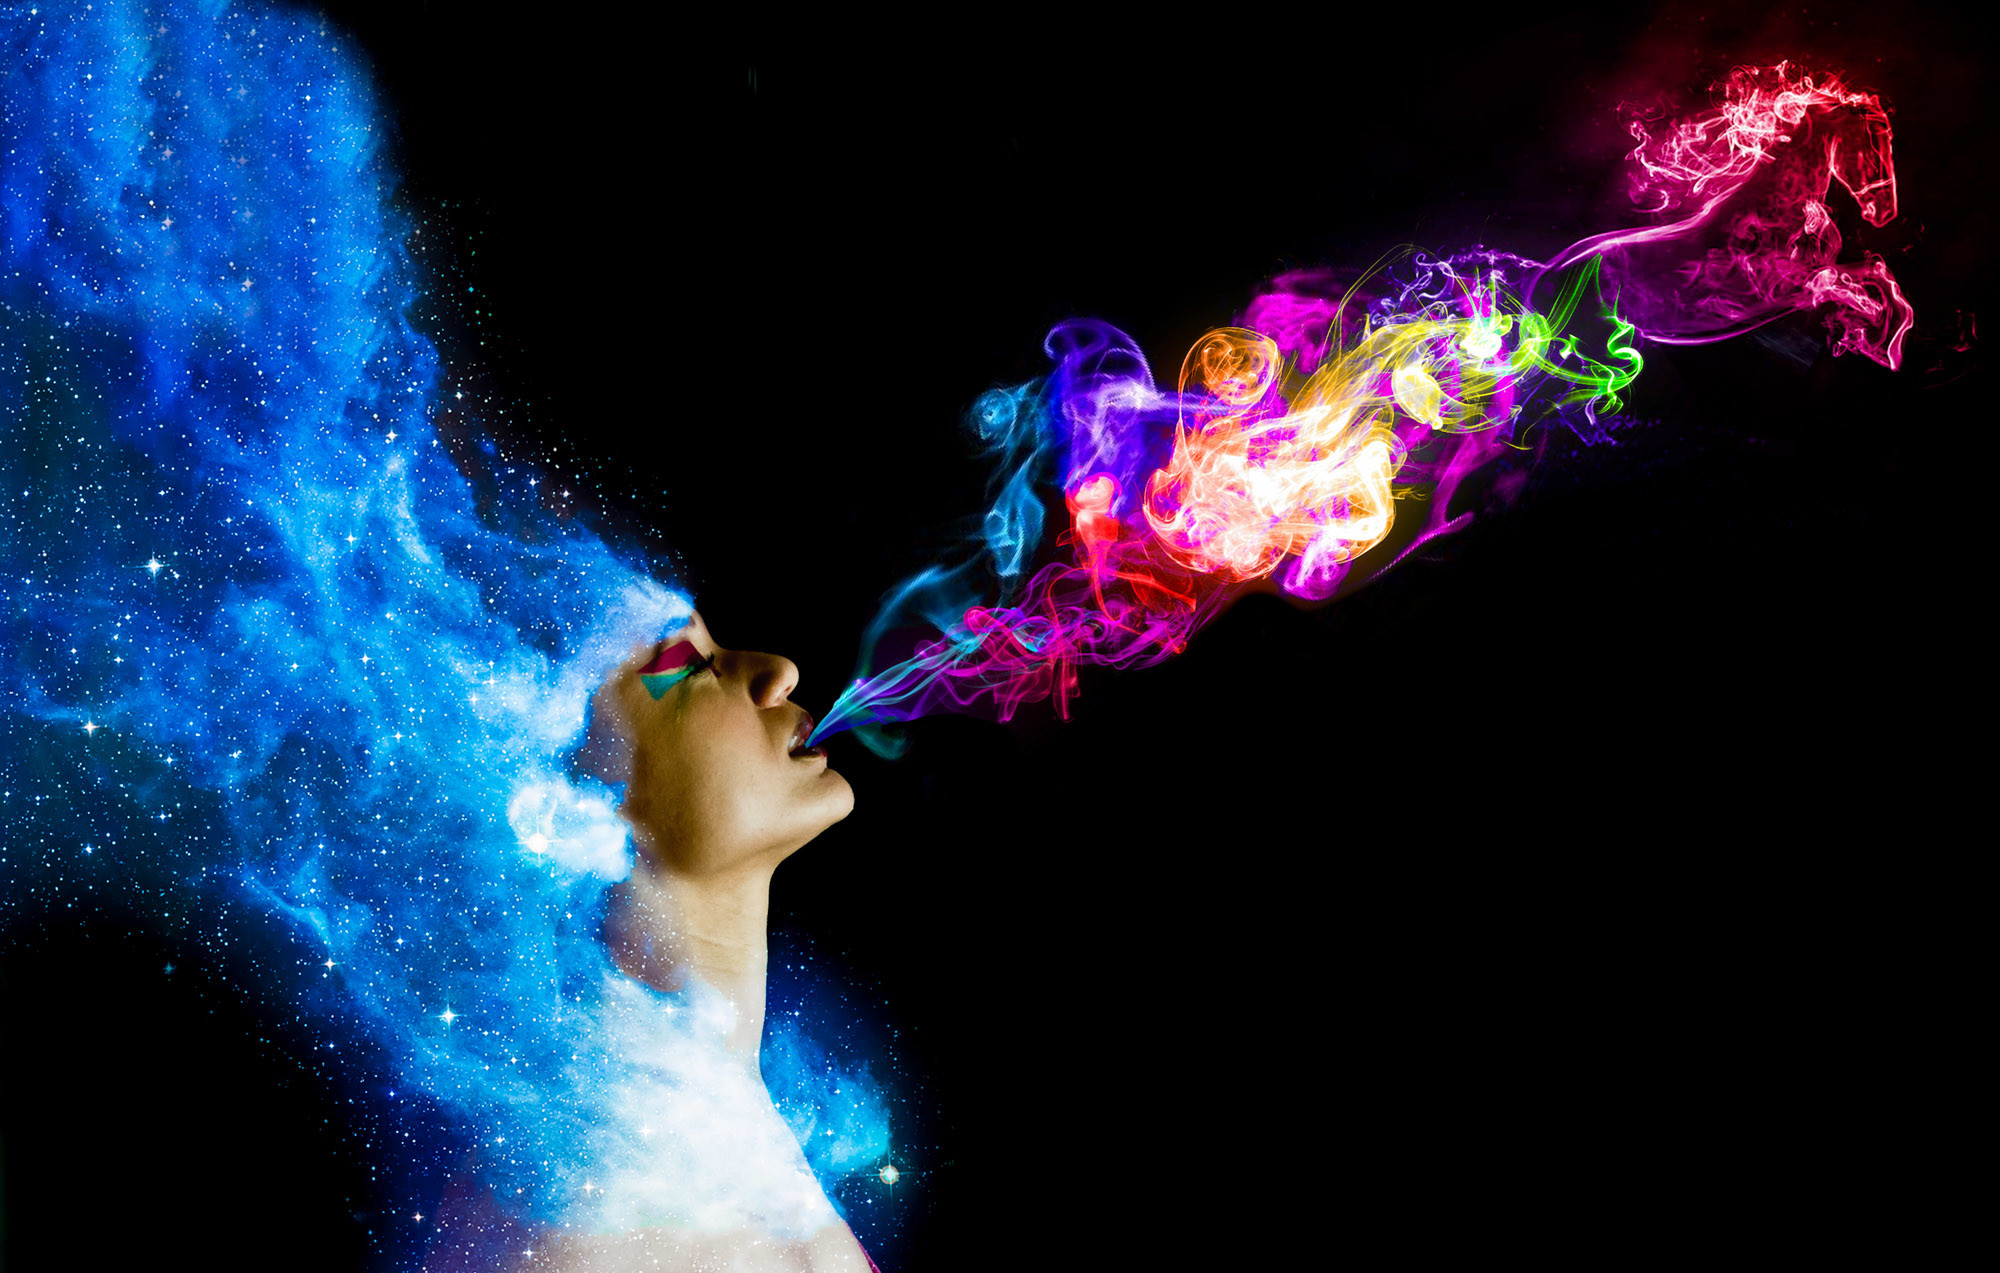 trippy smoke backgrounds tumblr